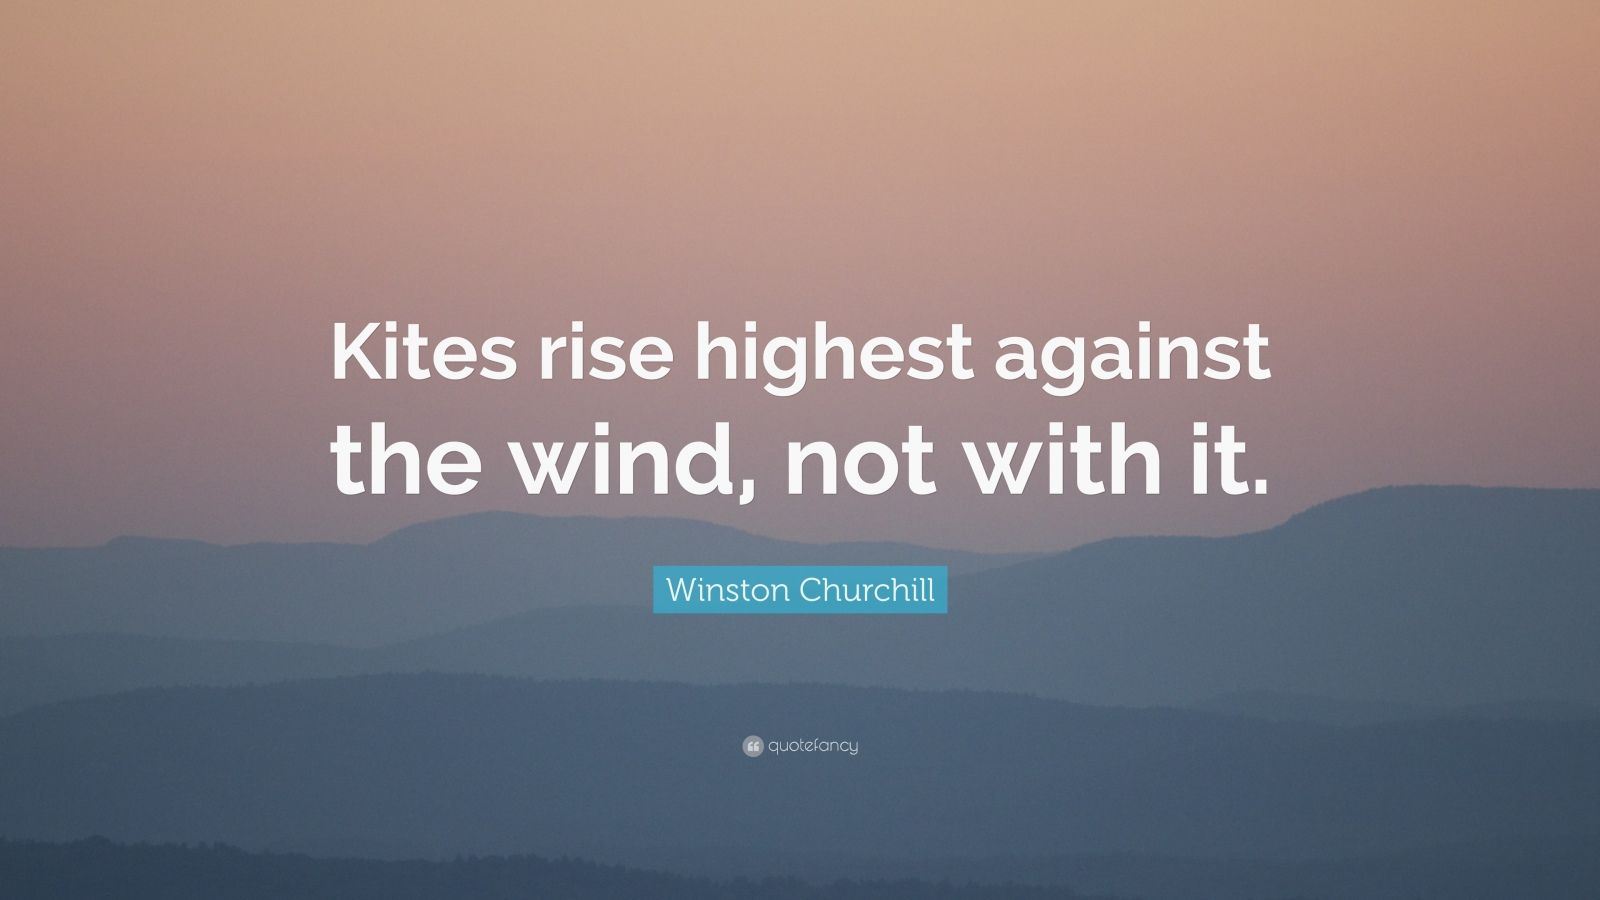 winston churchill quote   u201ckites rise highest against the